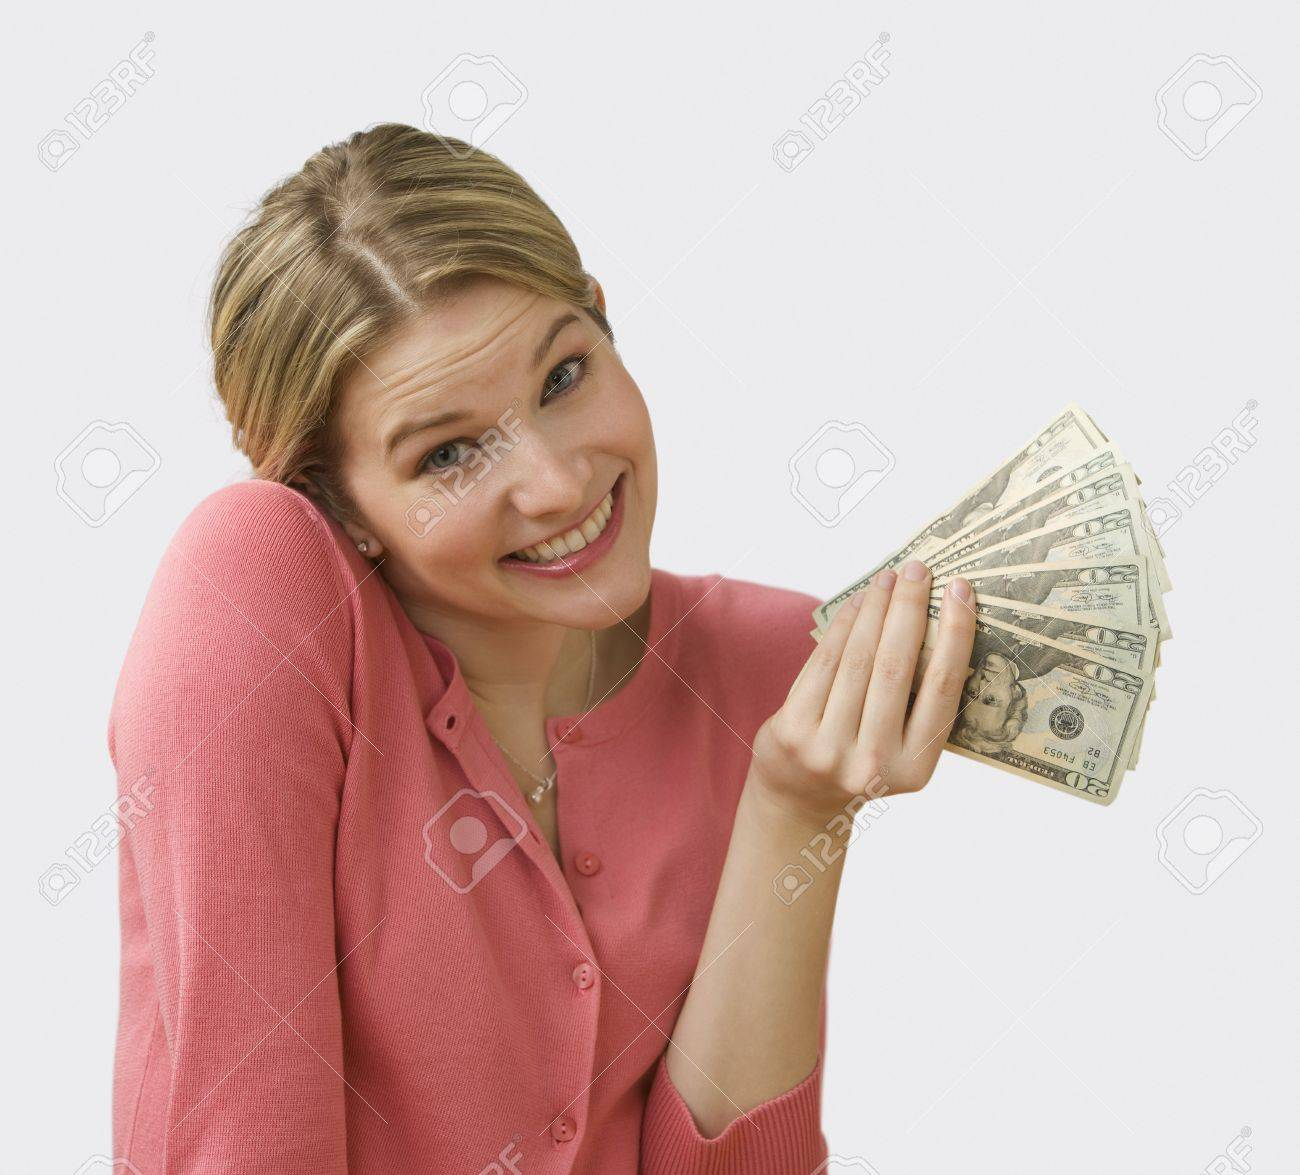 Beautiful young woman fans out cash and shrugs her shoulders.  Square shot. Stock Photo - 7467360